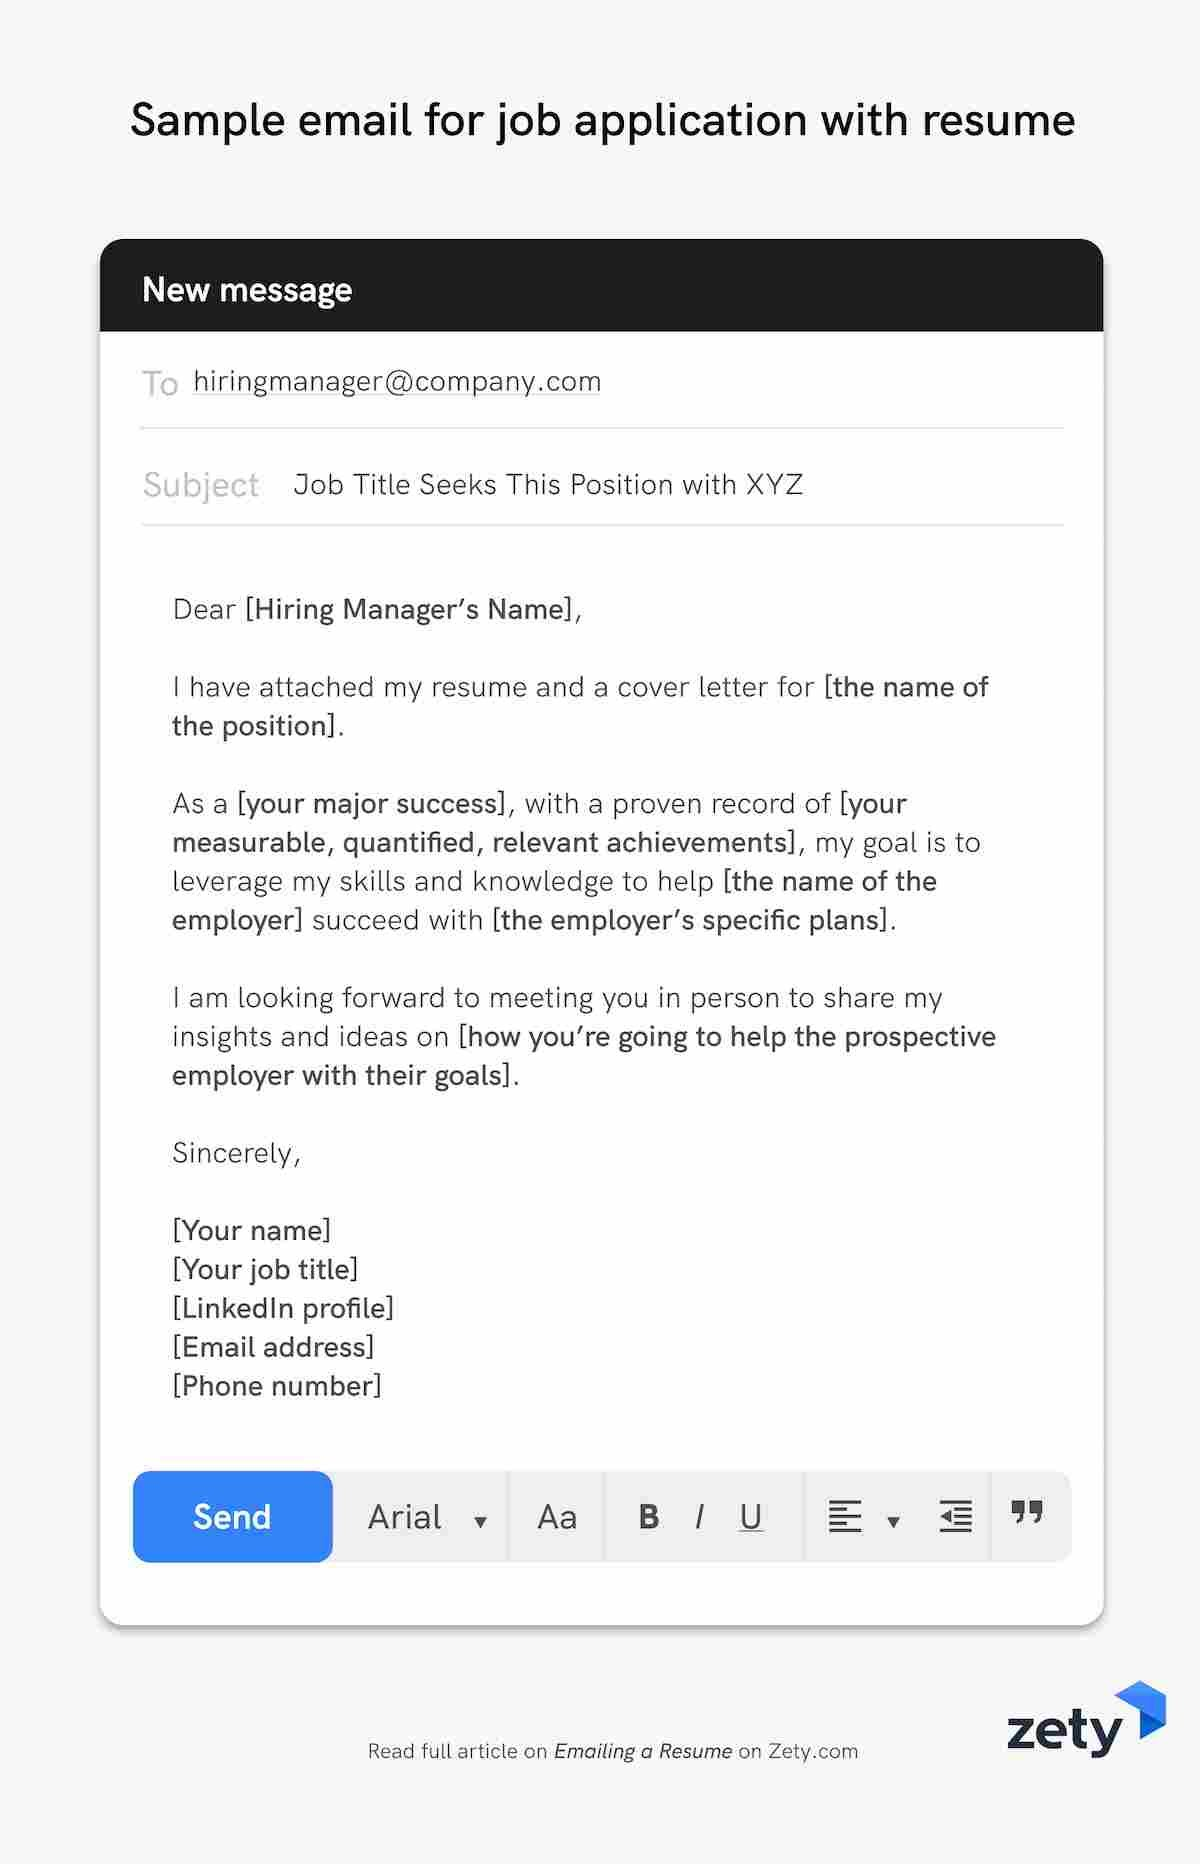 emailing resume job application email samples submission sample for with ccna certified Resume Resume Submission Email